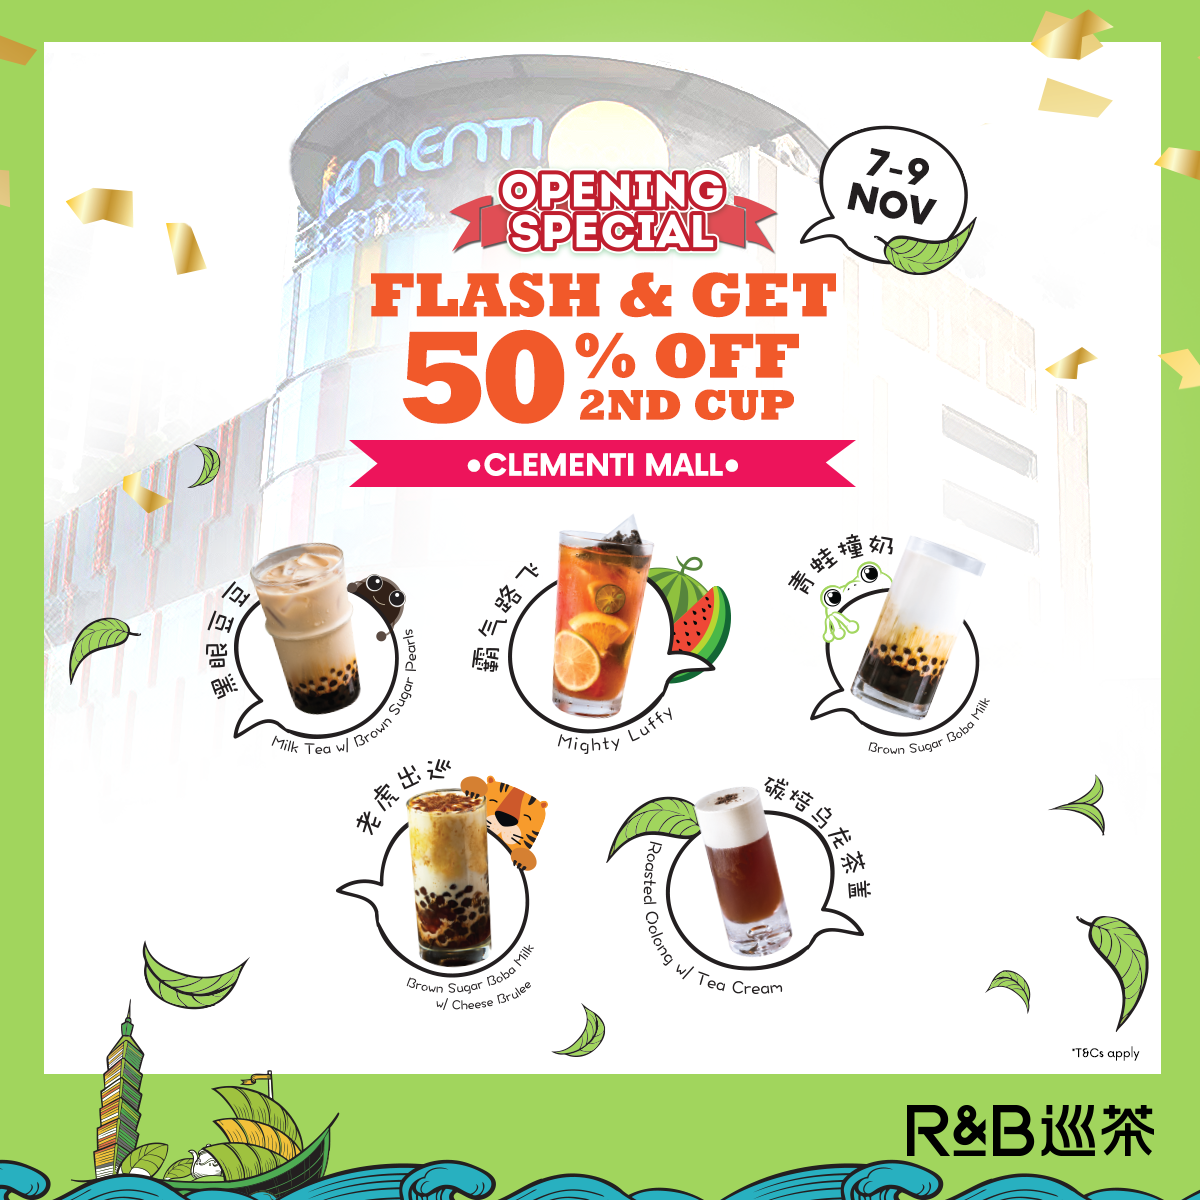 R&B Tea Singapore Flash & Get 50% Off 2nd Cup Clementi Mall Opening Special Promotion 7-9 Nov 2019 | Why Not Deals & Promotions